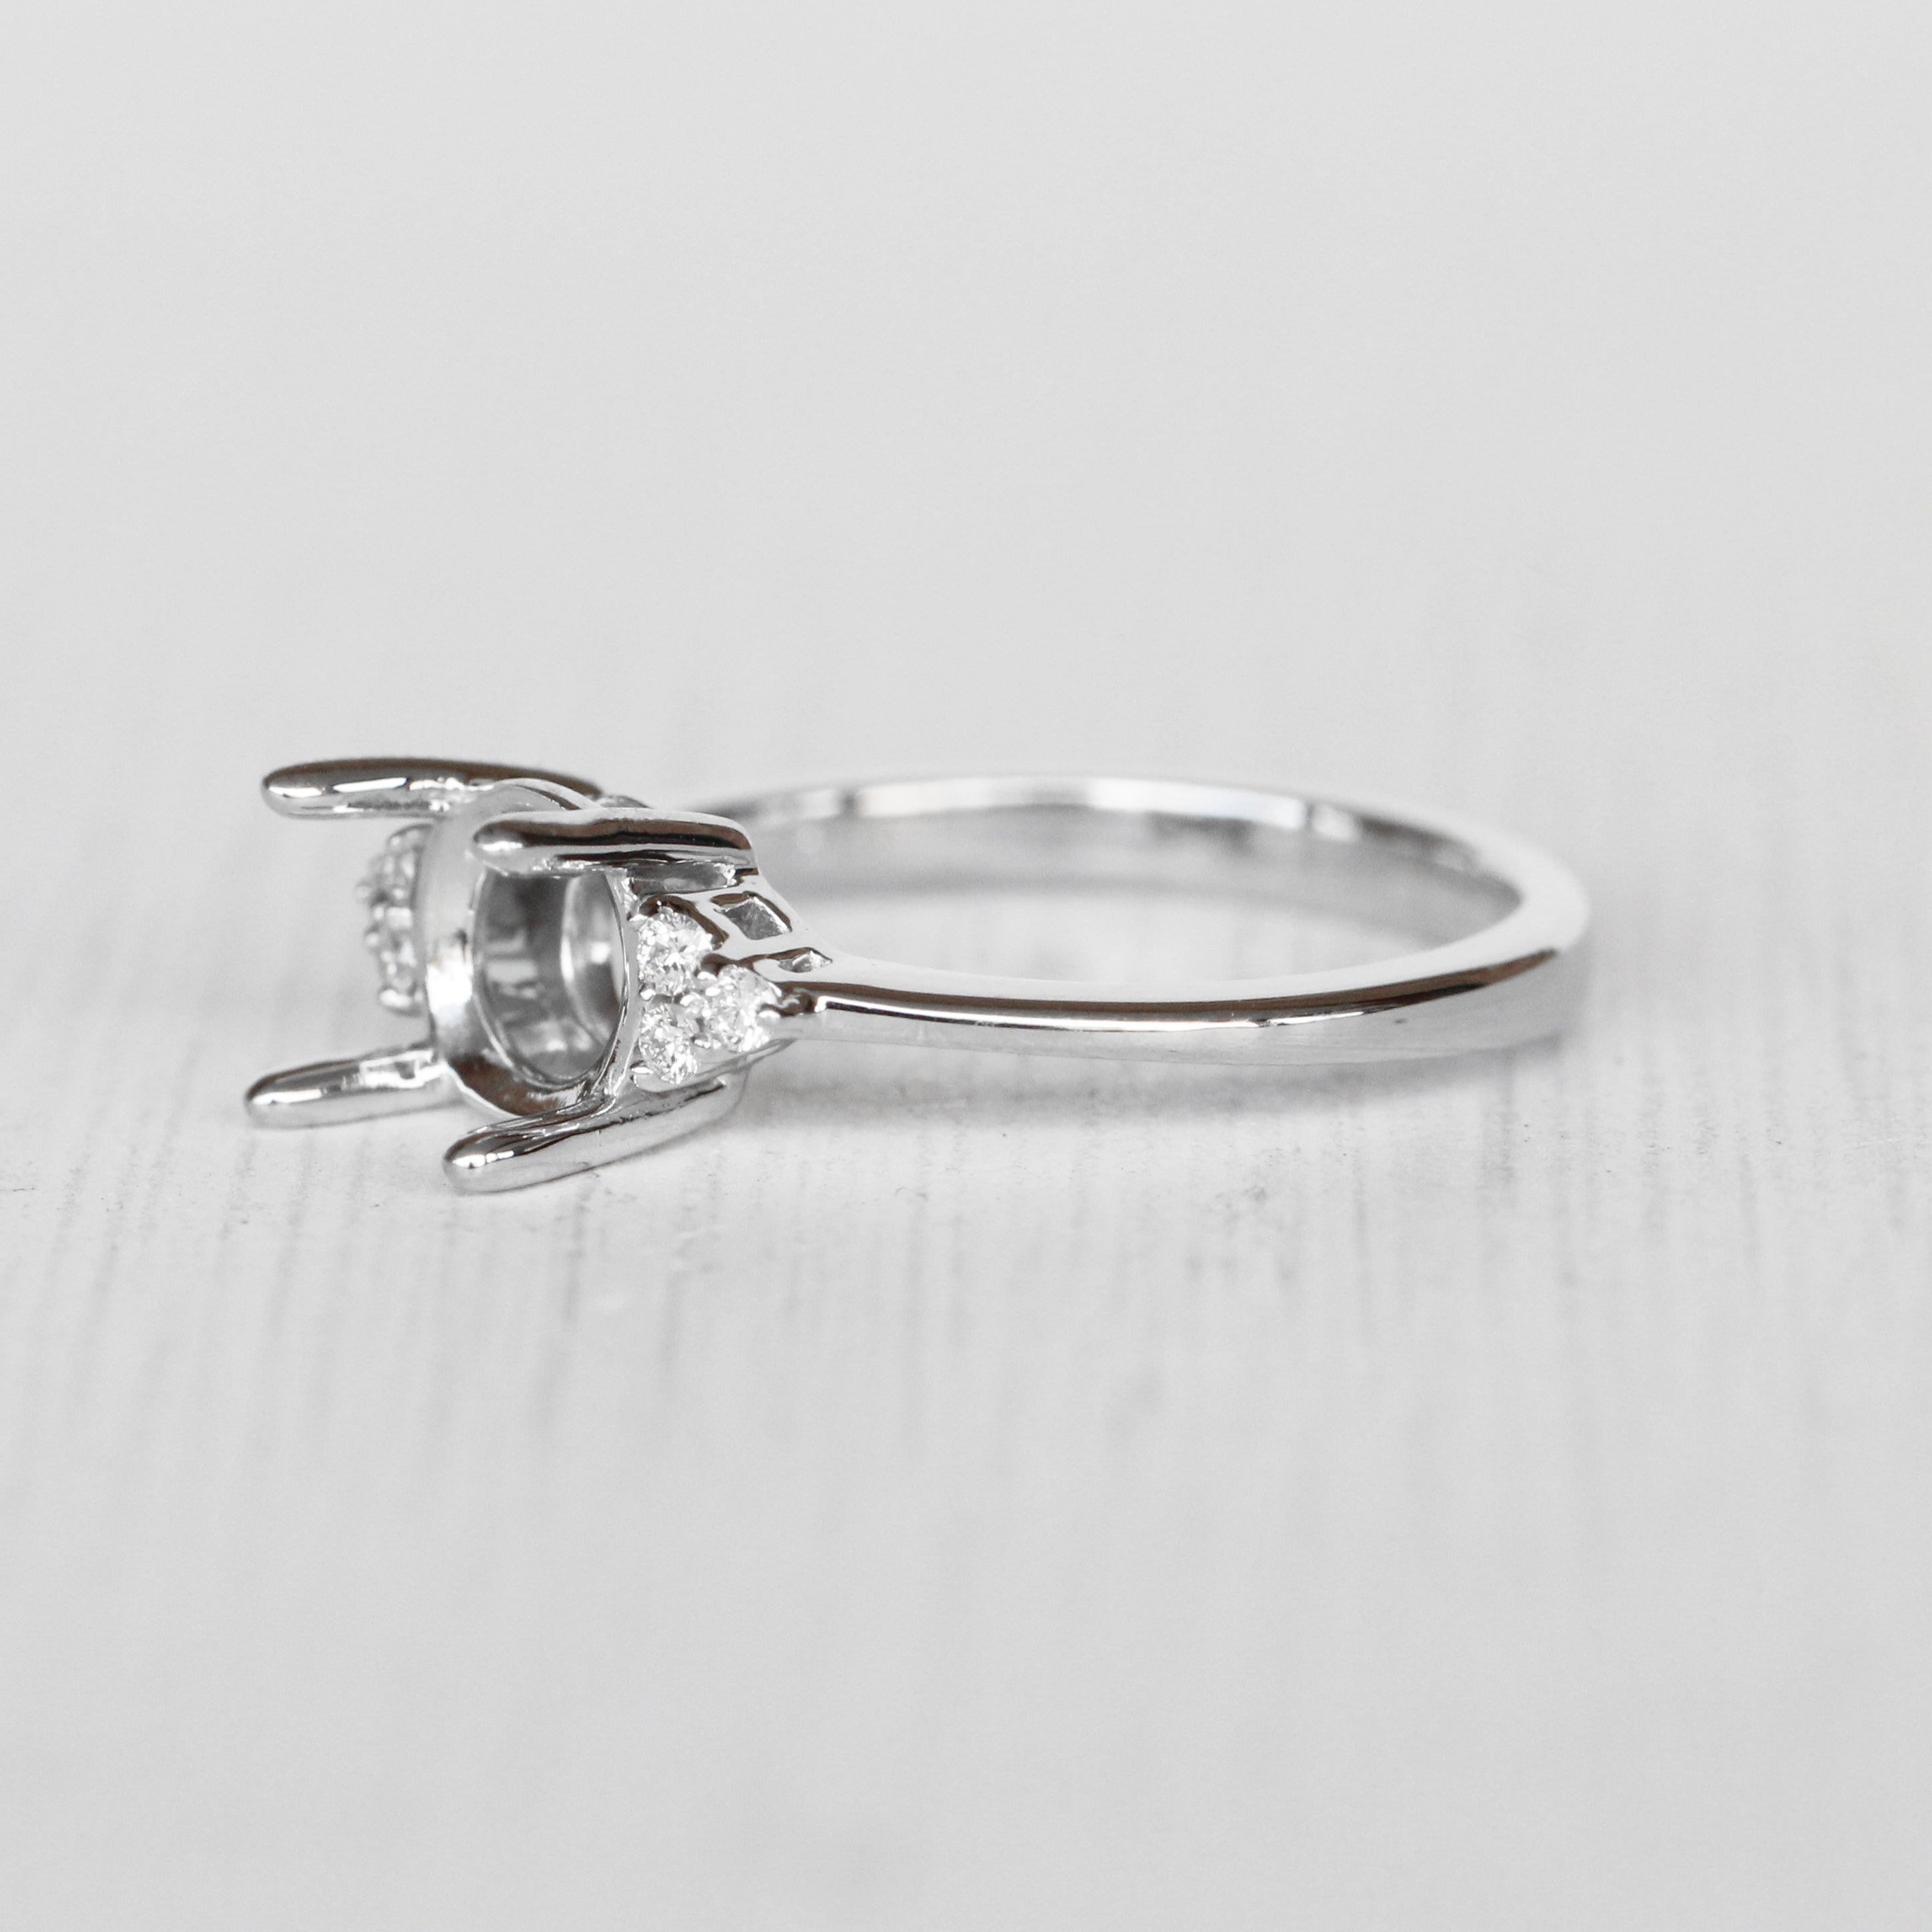 Imogene setting - Salt & Pepper Celestial Diamond Engagement Rings and Wedding Bands  by Midwinter Co.